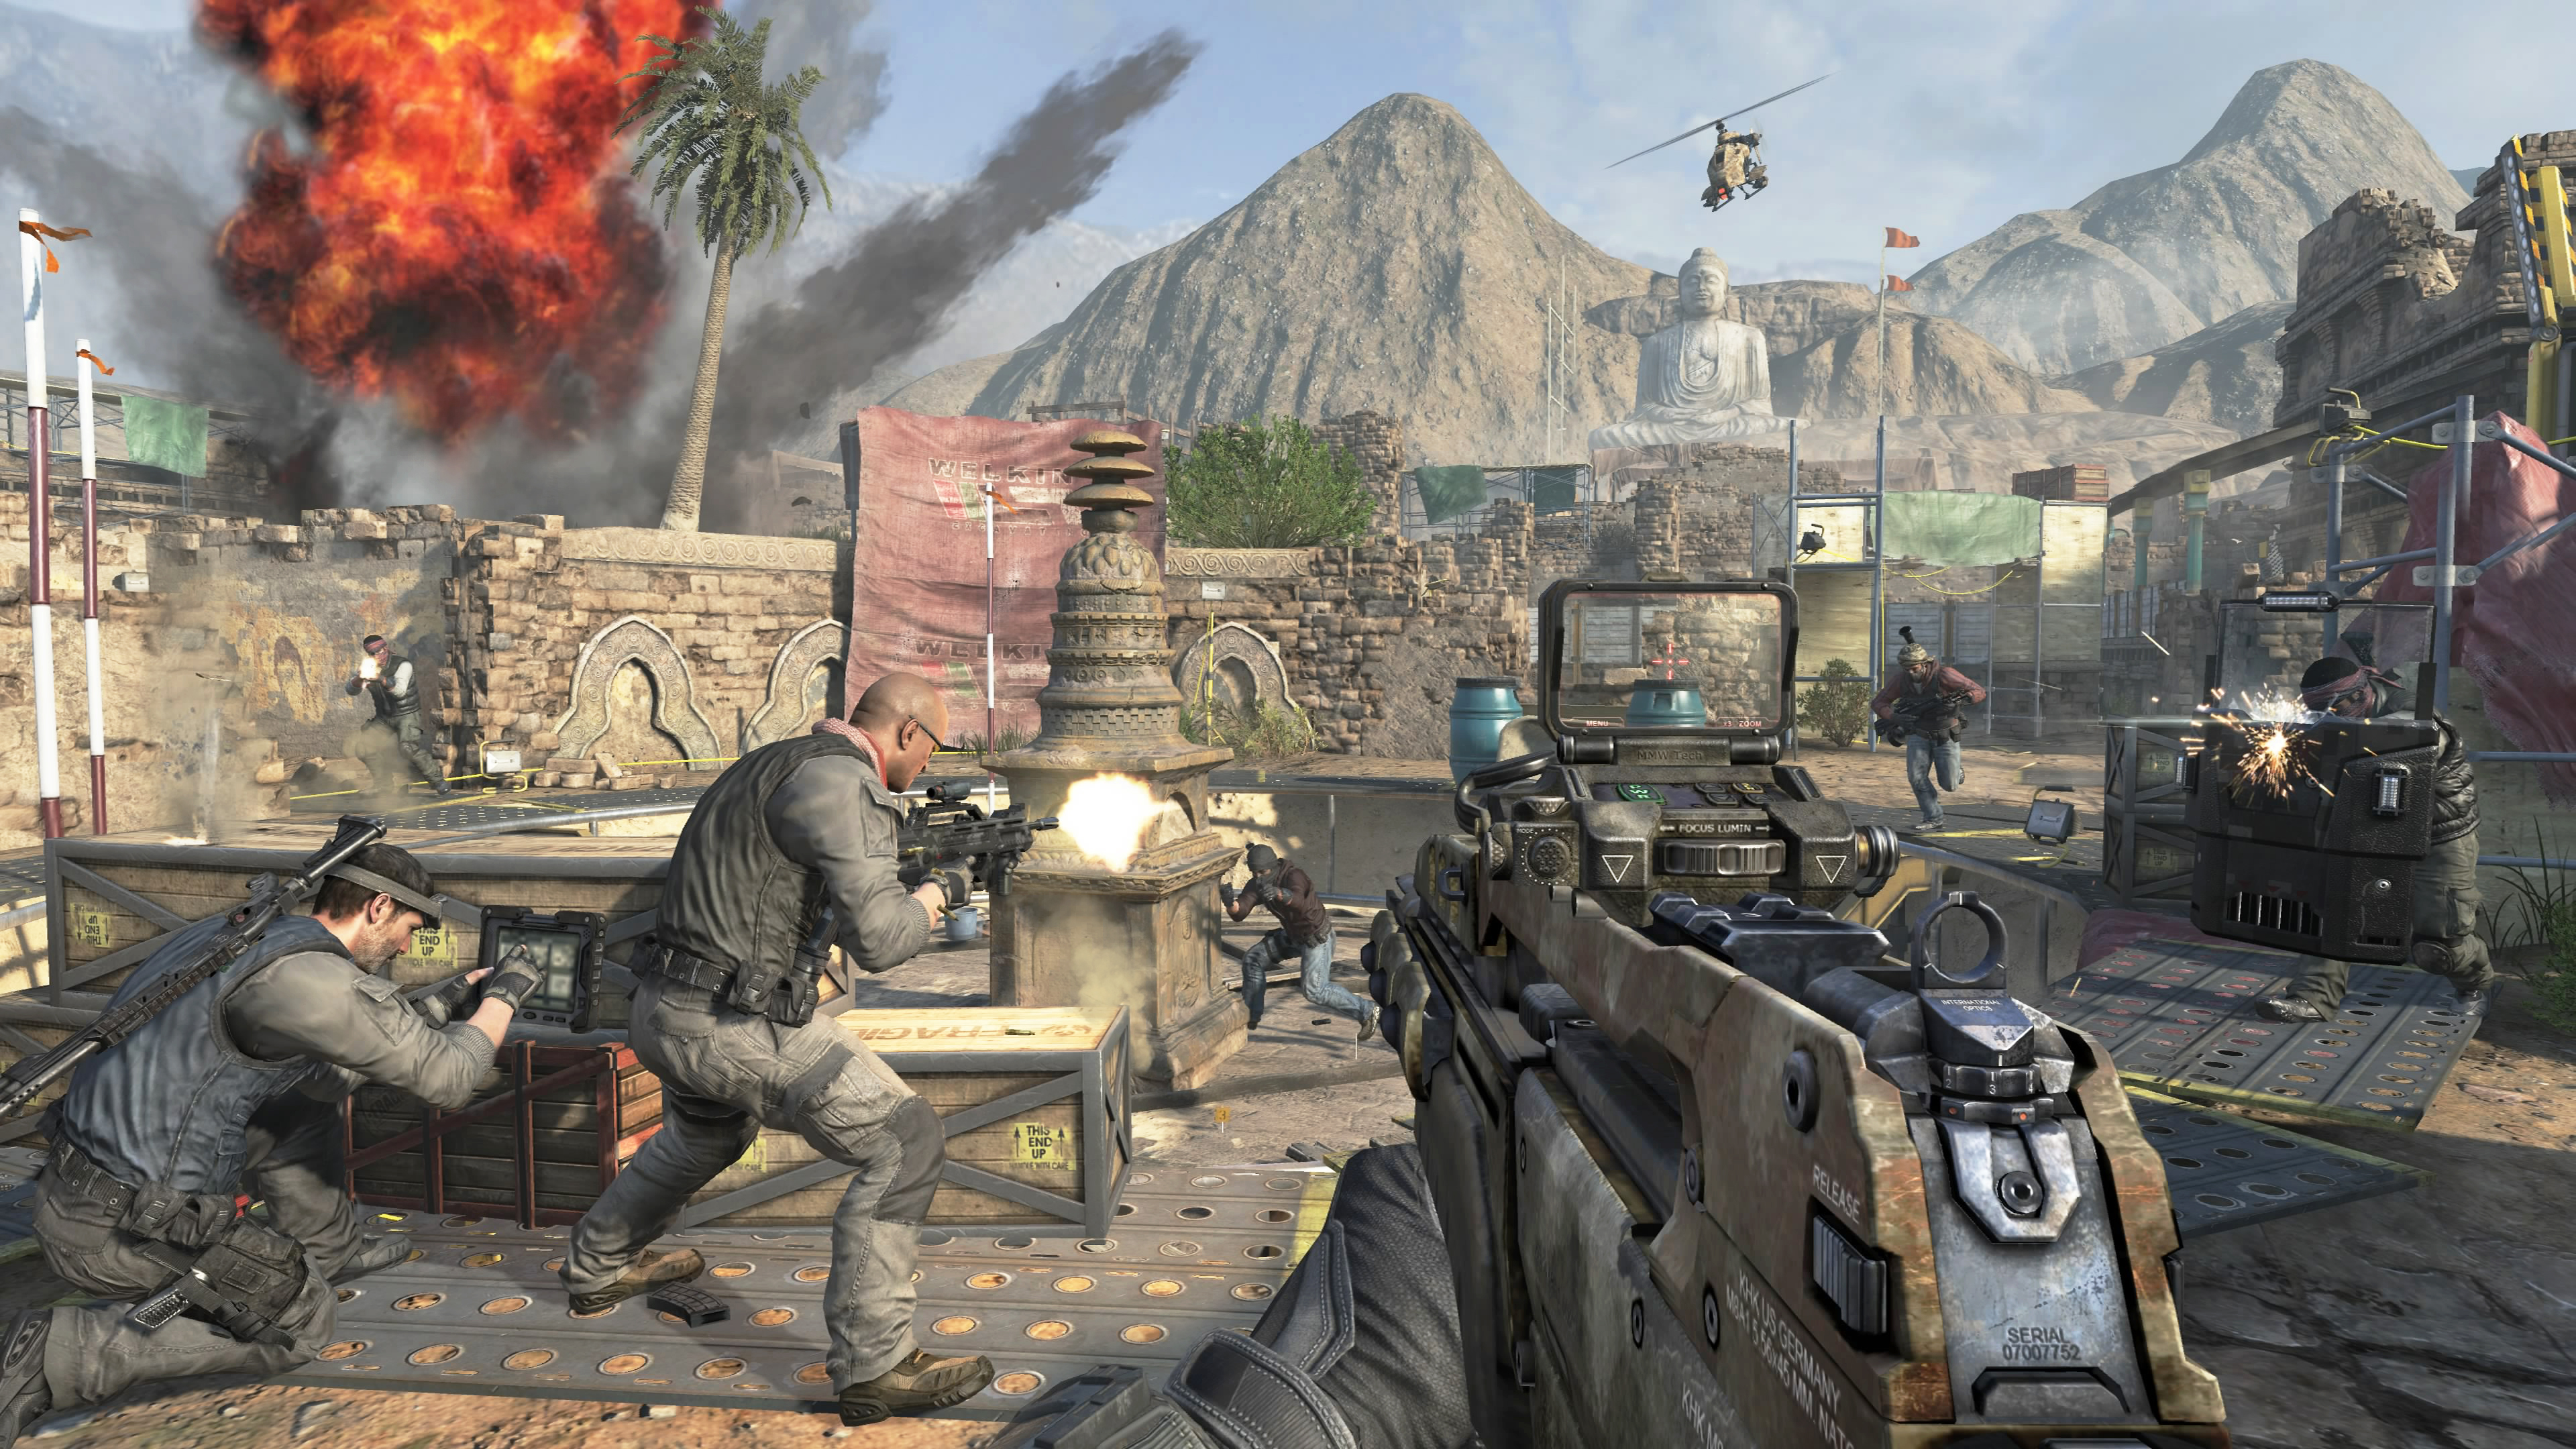 call of duty black ops 2 buried map pack with Call Of Duty Black Ops Iis Apocalypse Has Arrived on Call Of Duty Black Ops Ii Vengeance Review Die Hard 3866881 besides Watch in addition Call Of Duty Black Ops 2 Zombie Maps also 16 Hd Call Of Duty Zombies Wallpapers additionally Watch.